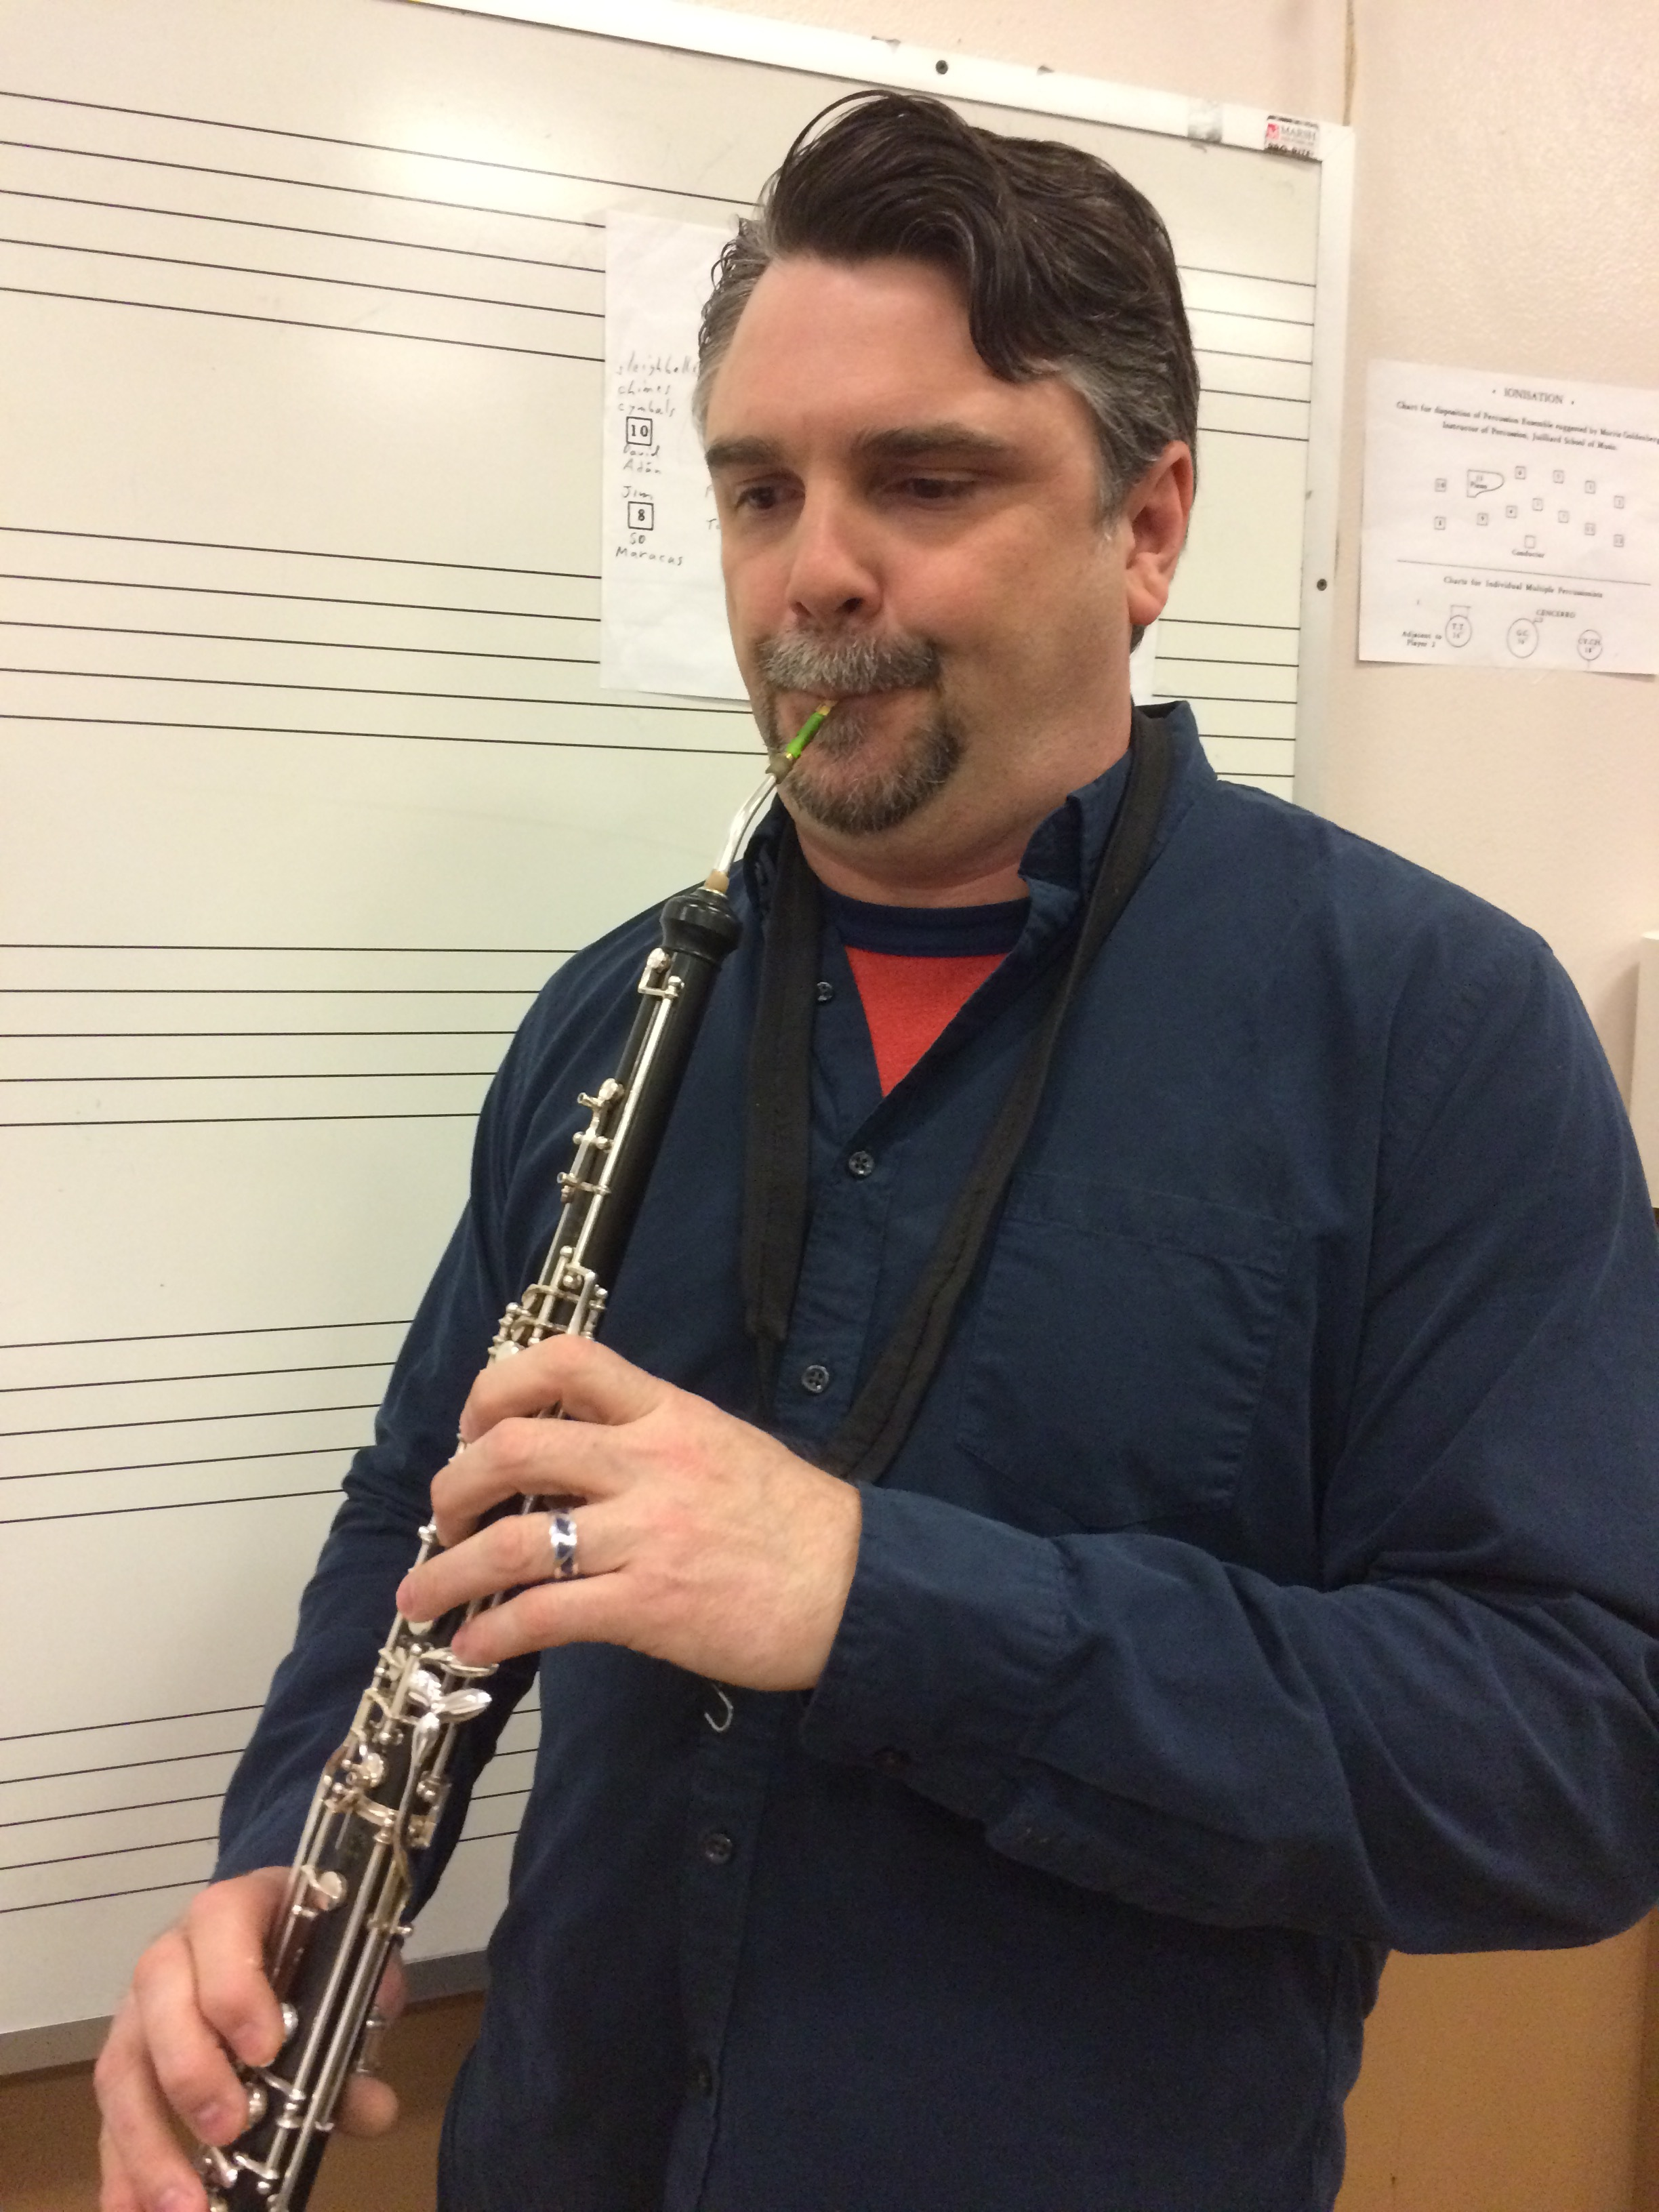 English horn soloist Russ deLuna during rehearsal